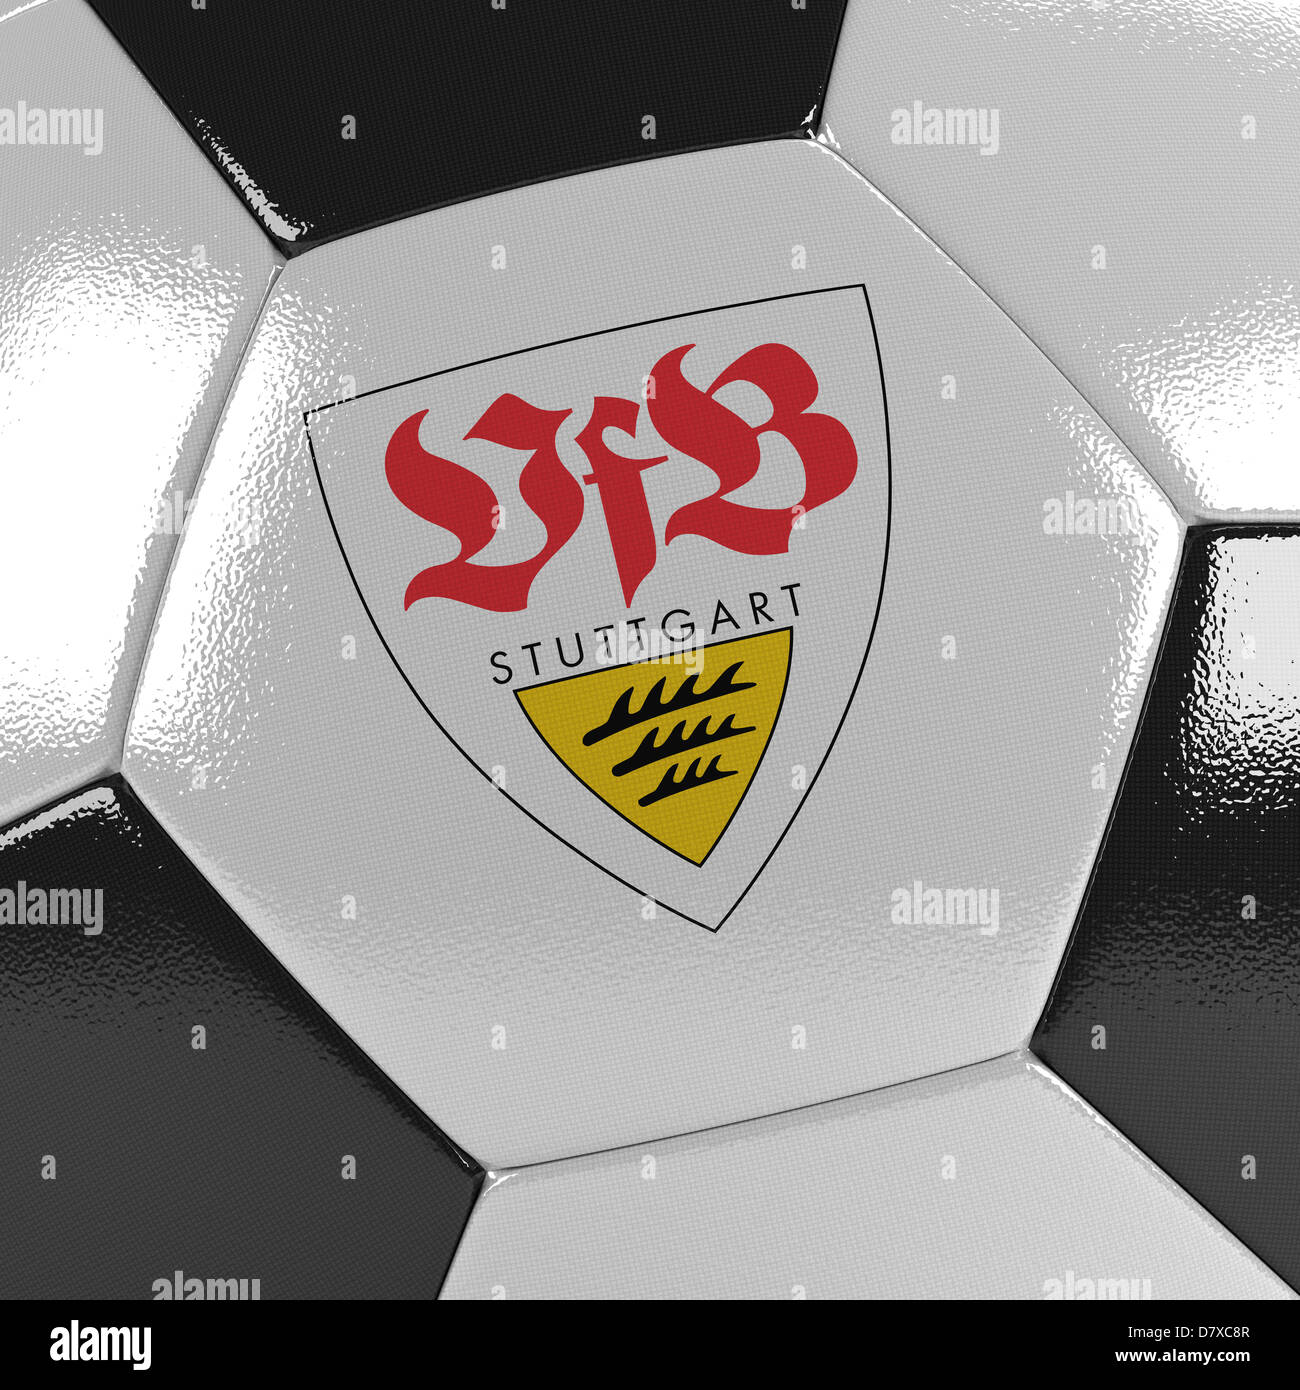 VfB Stuttgart soccer ball Stock Photo